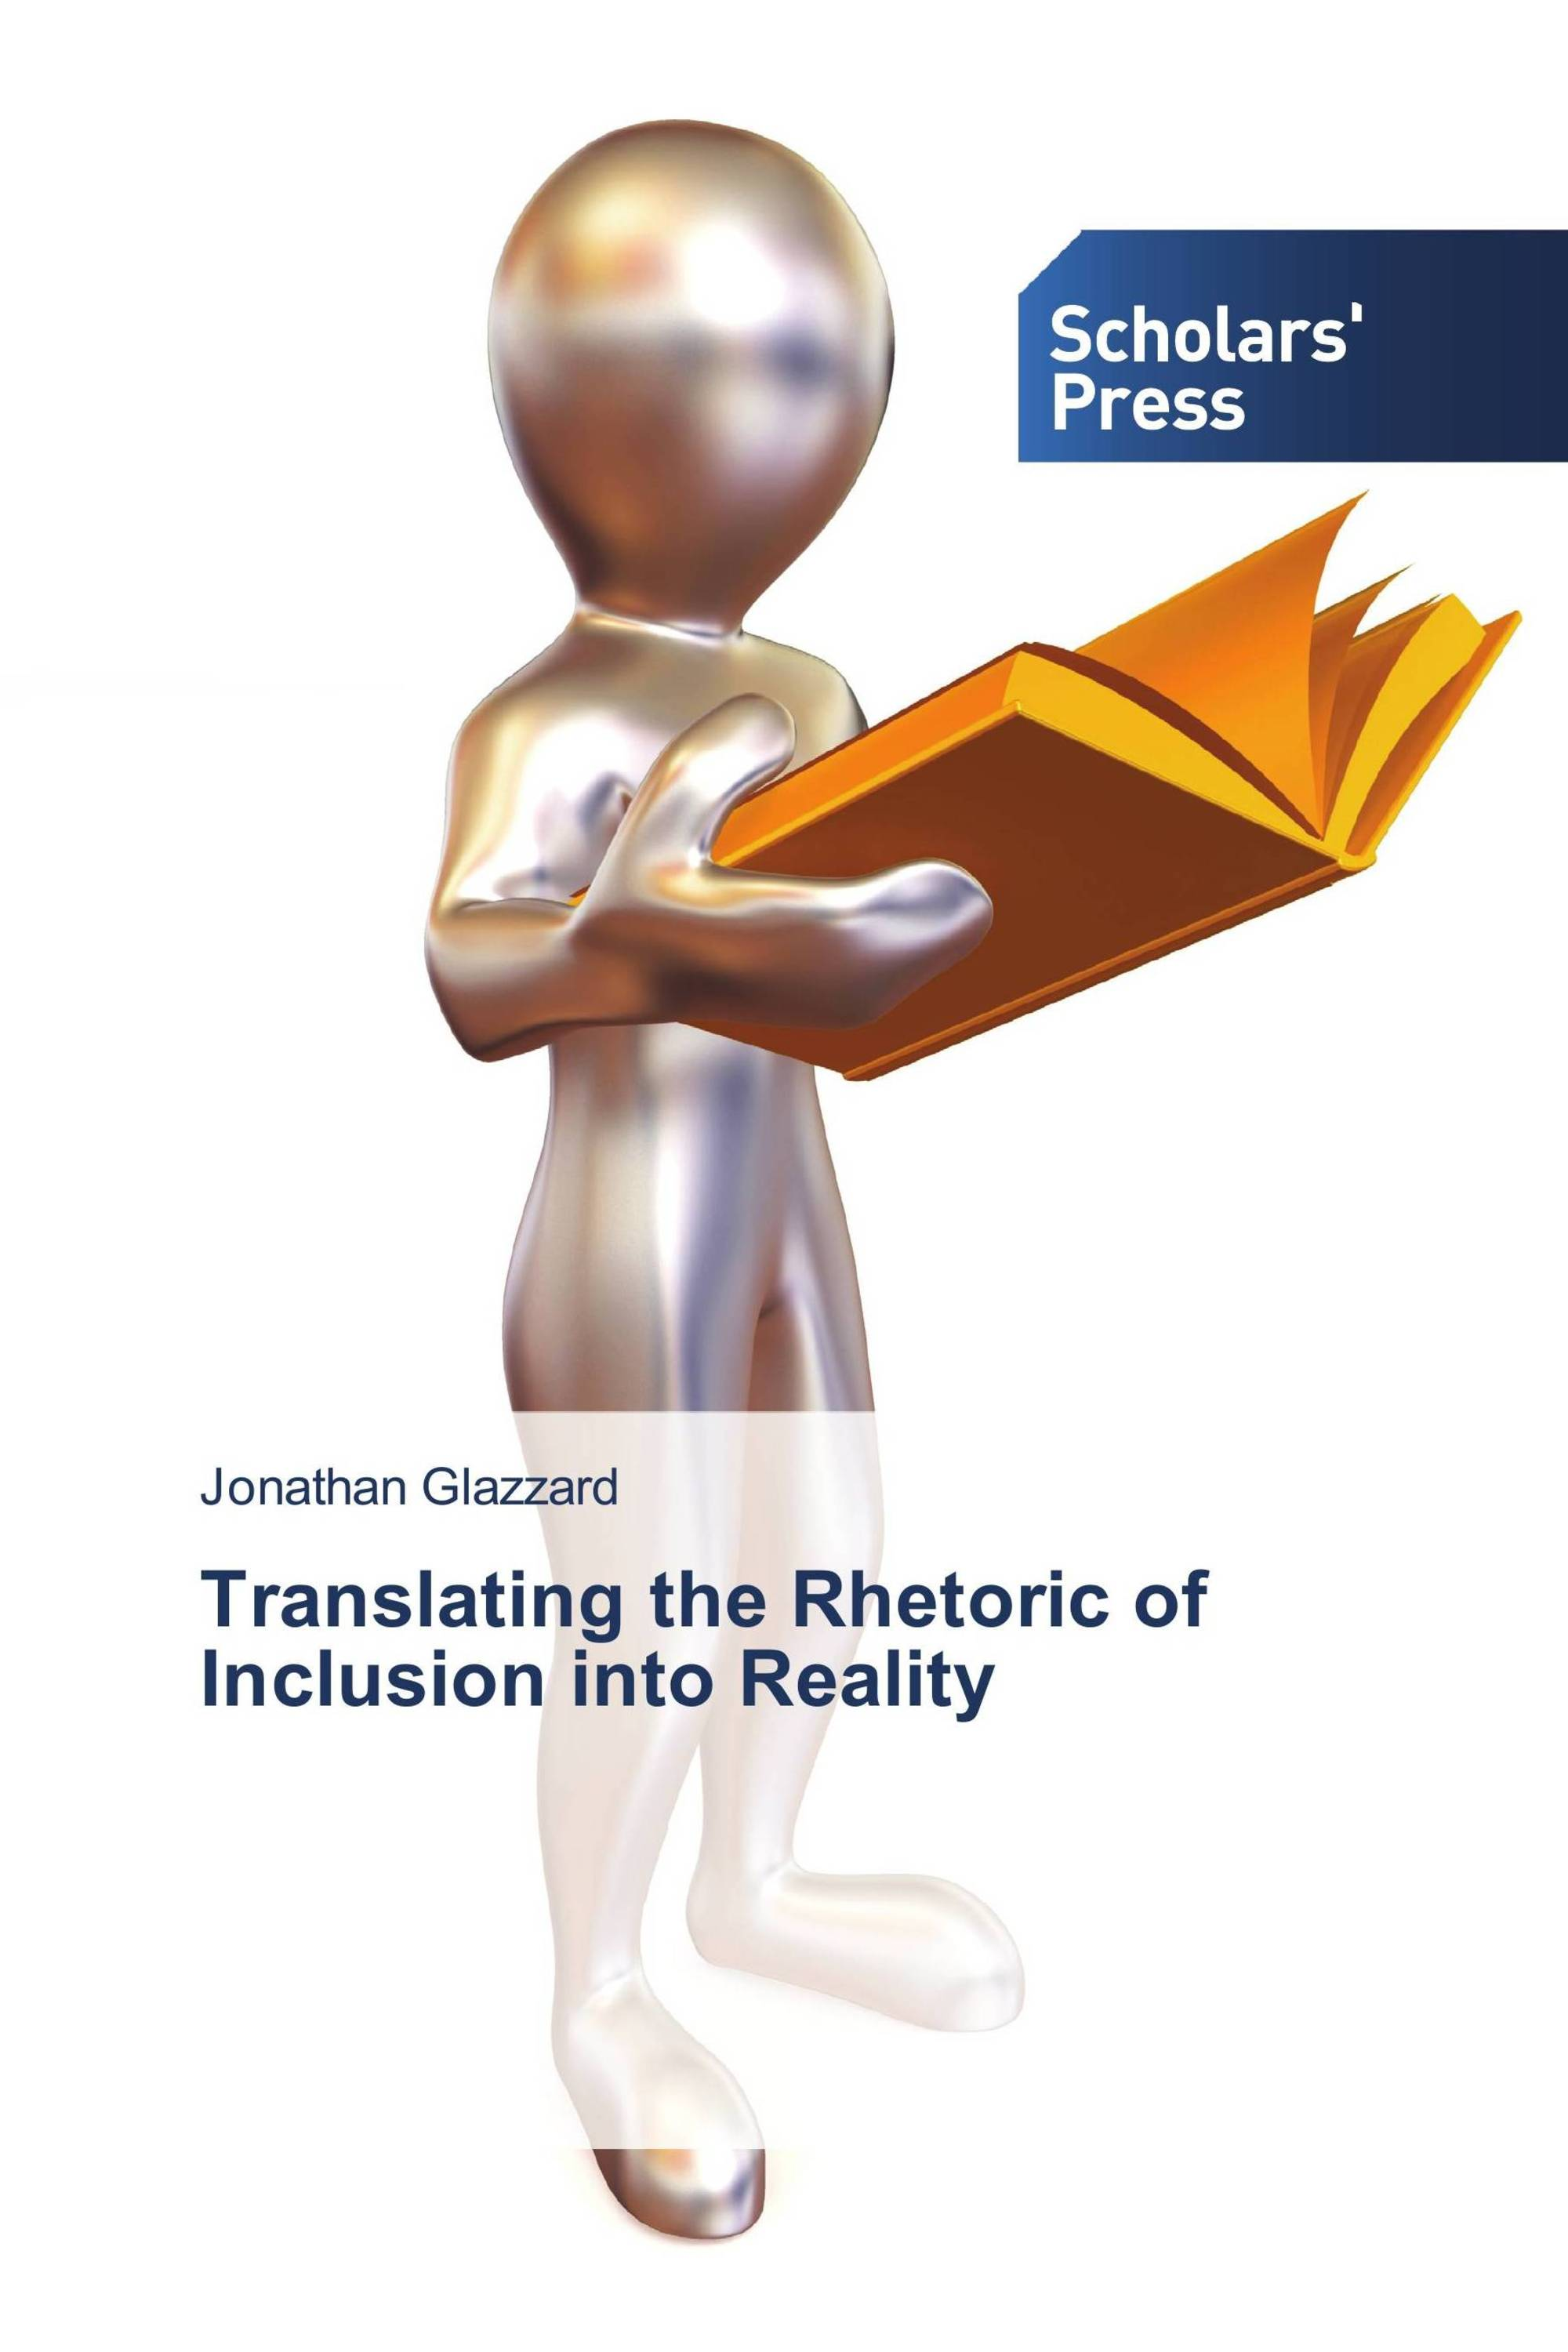 Translating the Rhetoric of Inclusion into Reality